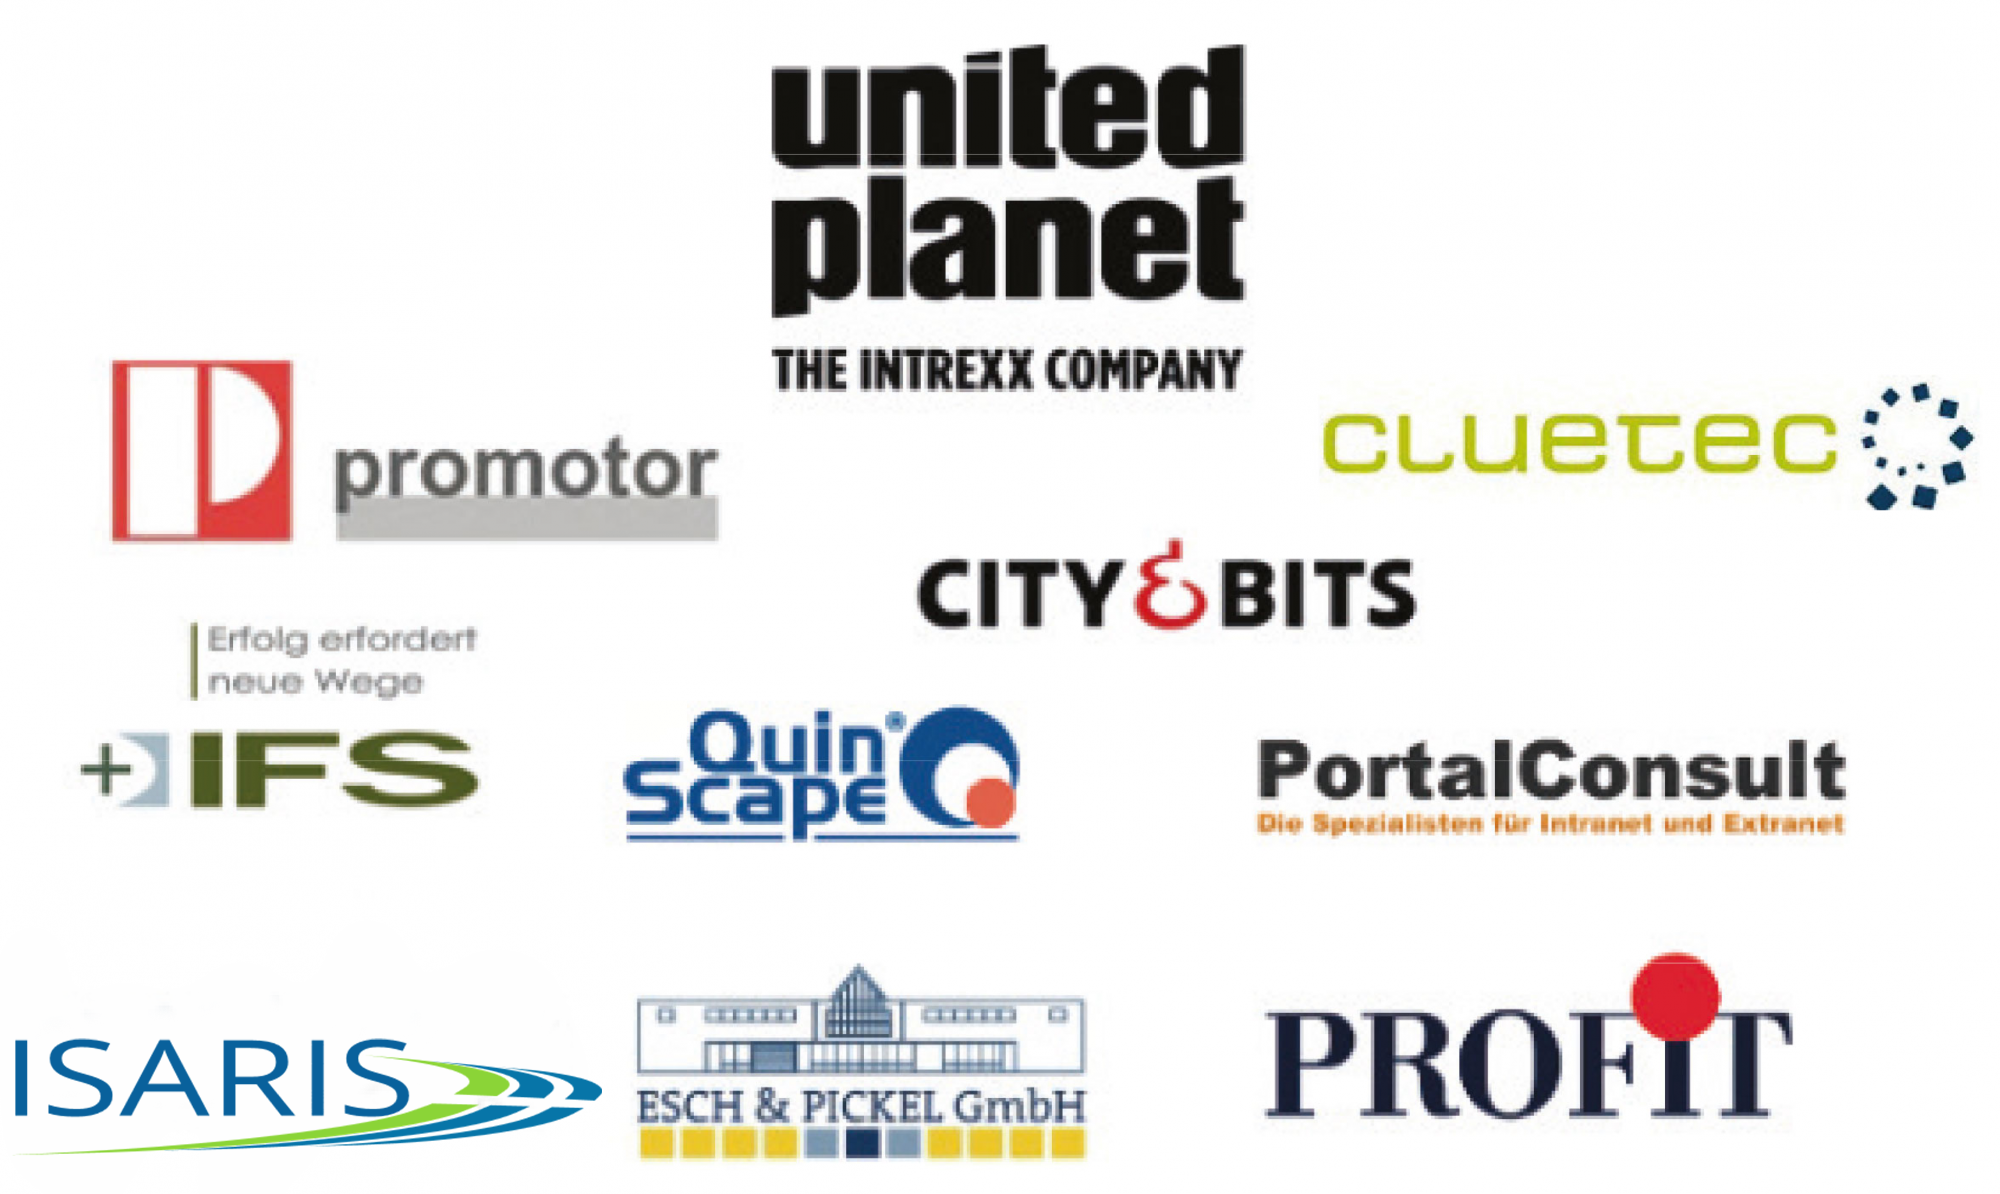 AeroEx,United Planet,init.all,promotor,PortalConsult,City&Bits,IFS,QuinScape,KaizenInstitute,SD,Esch&Pickel,PROFIT